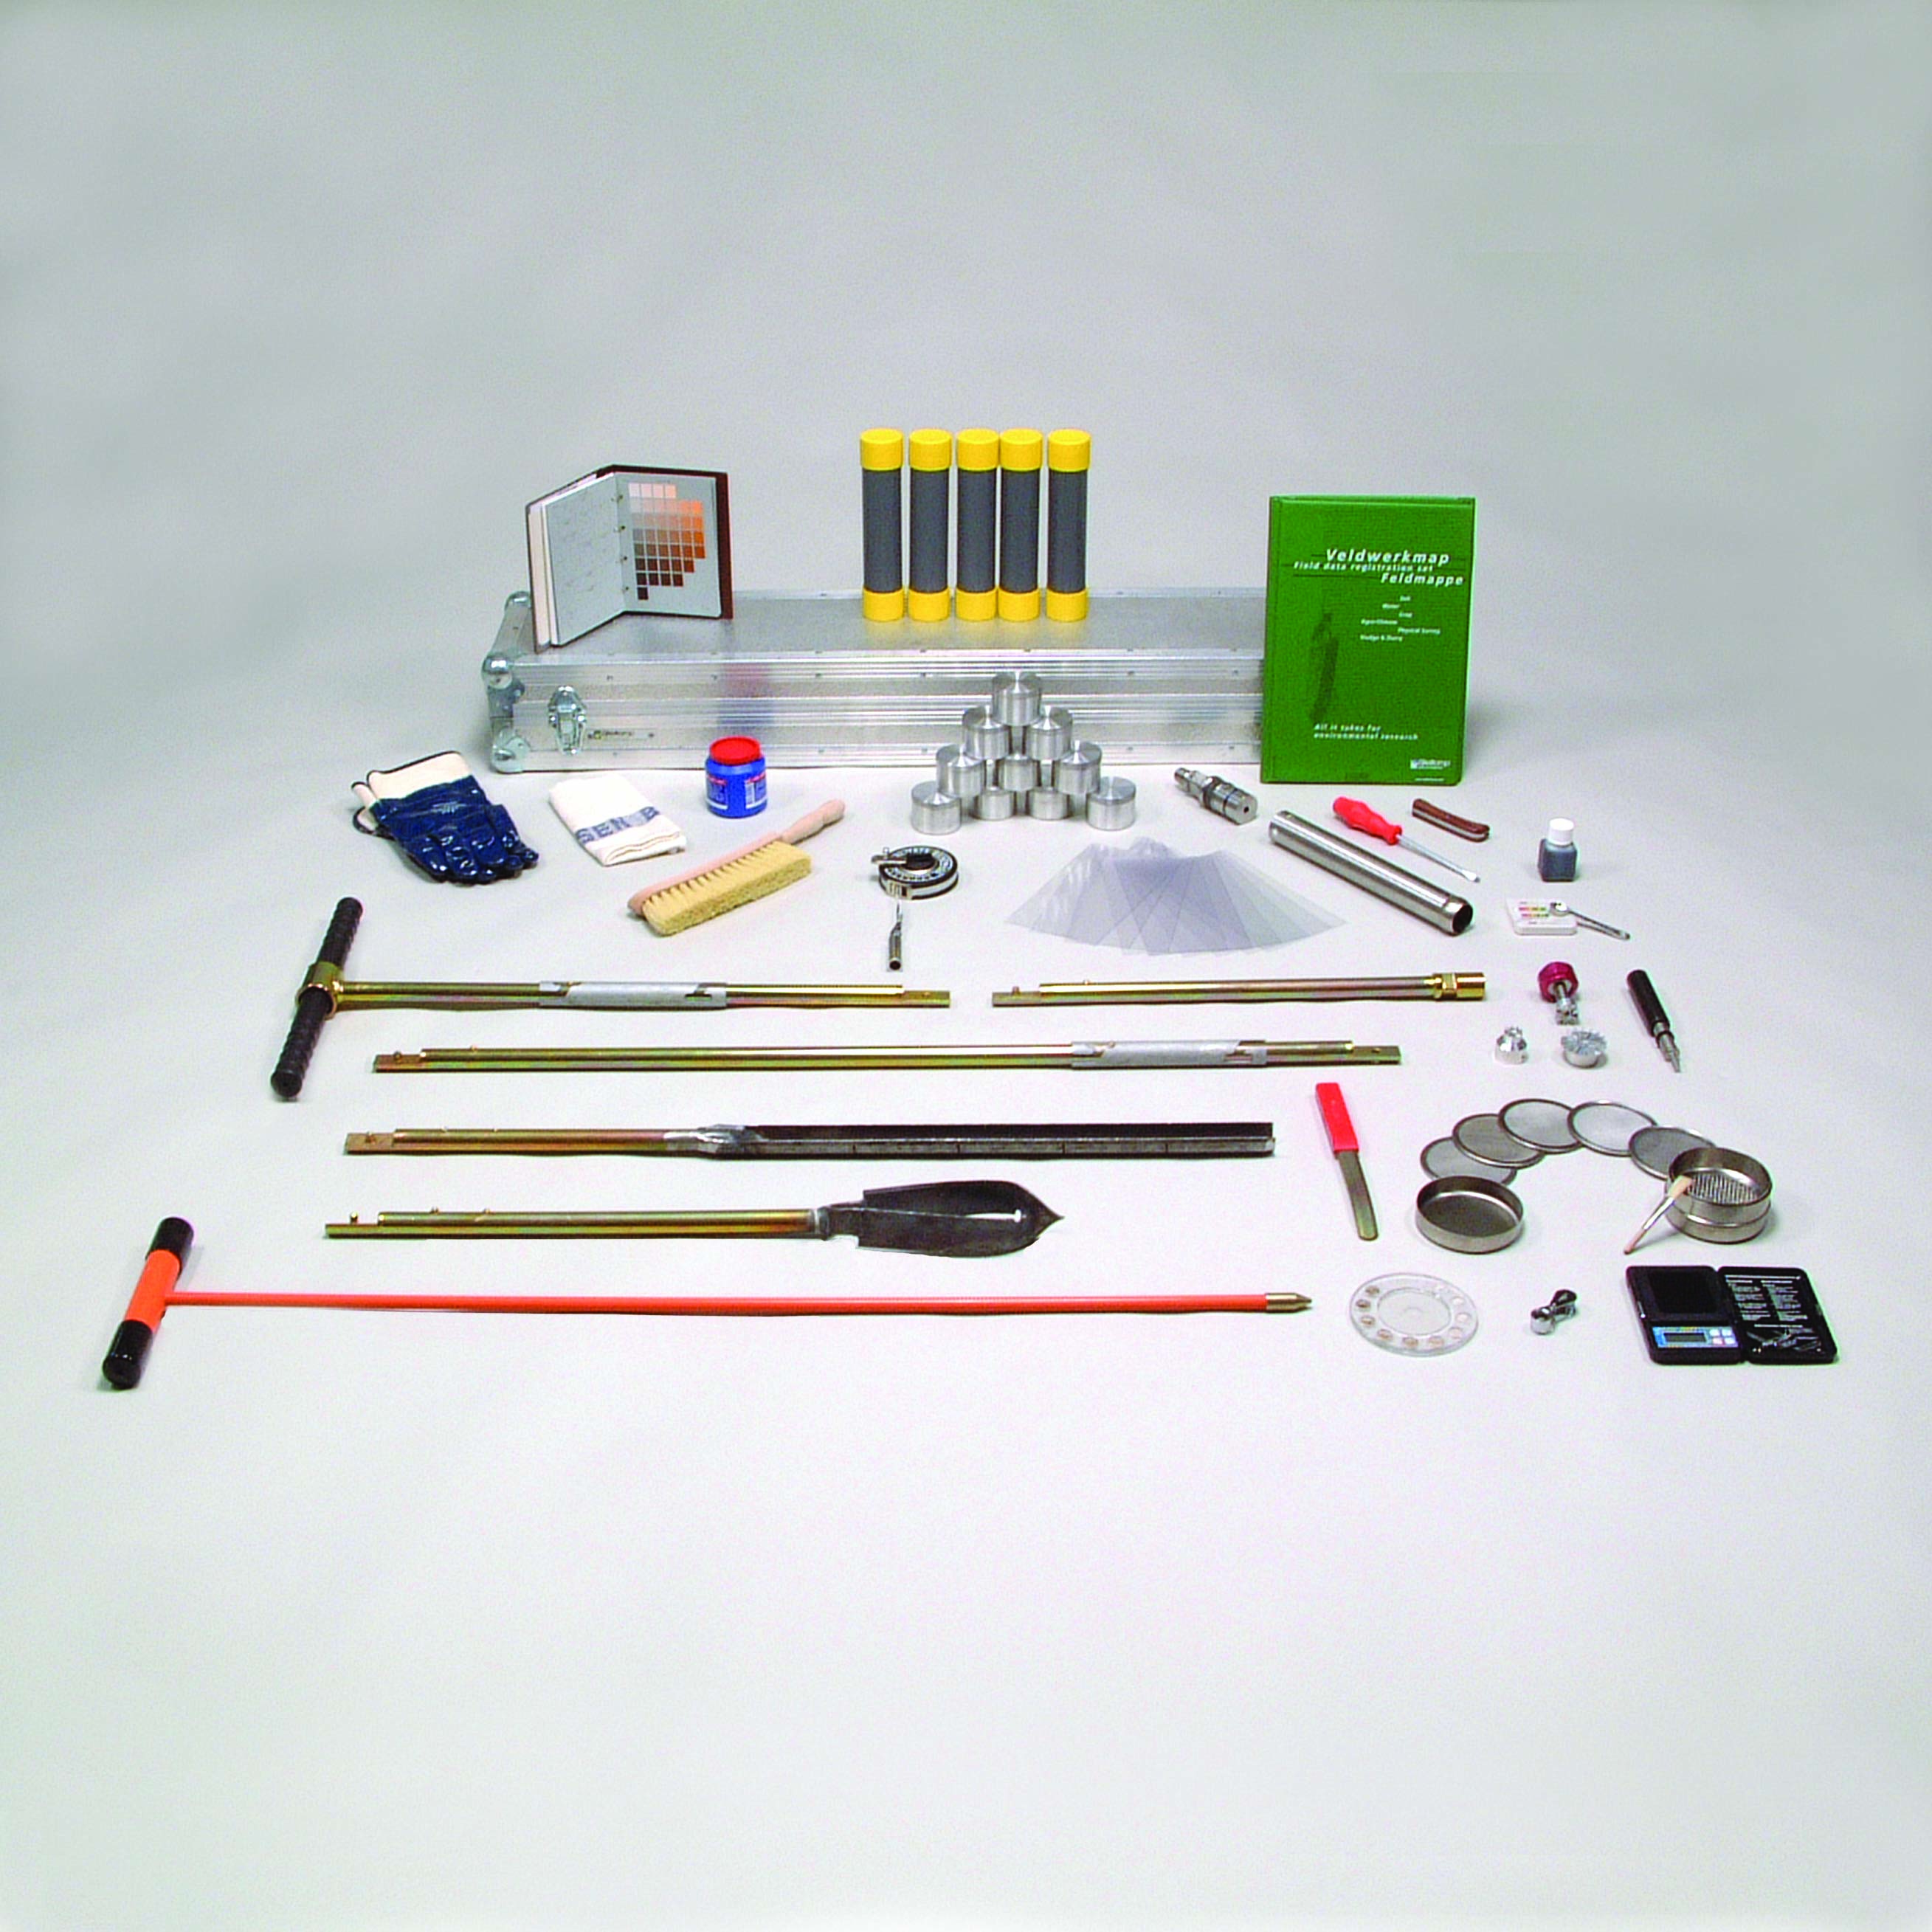 Soil sampling and classification set